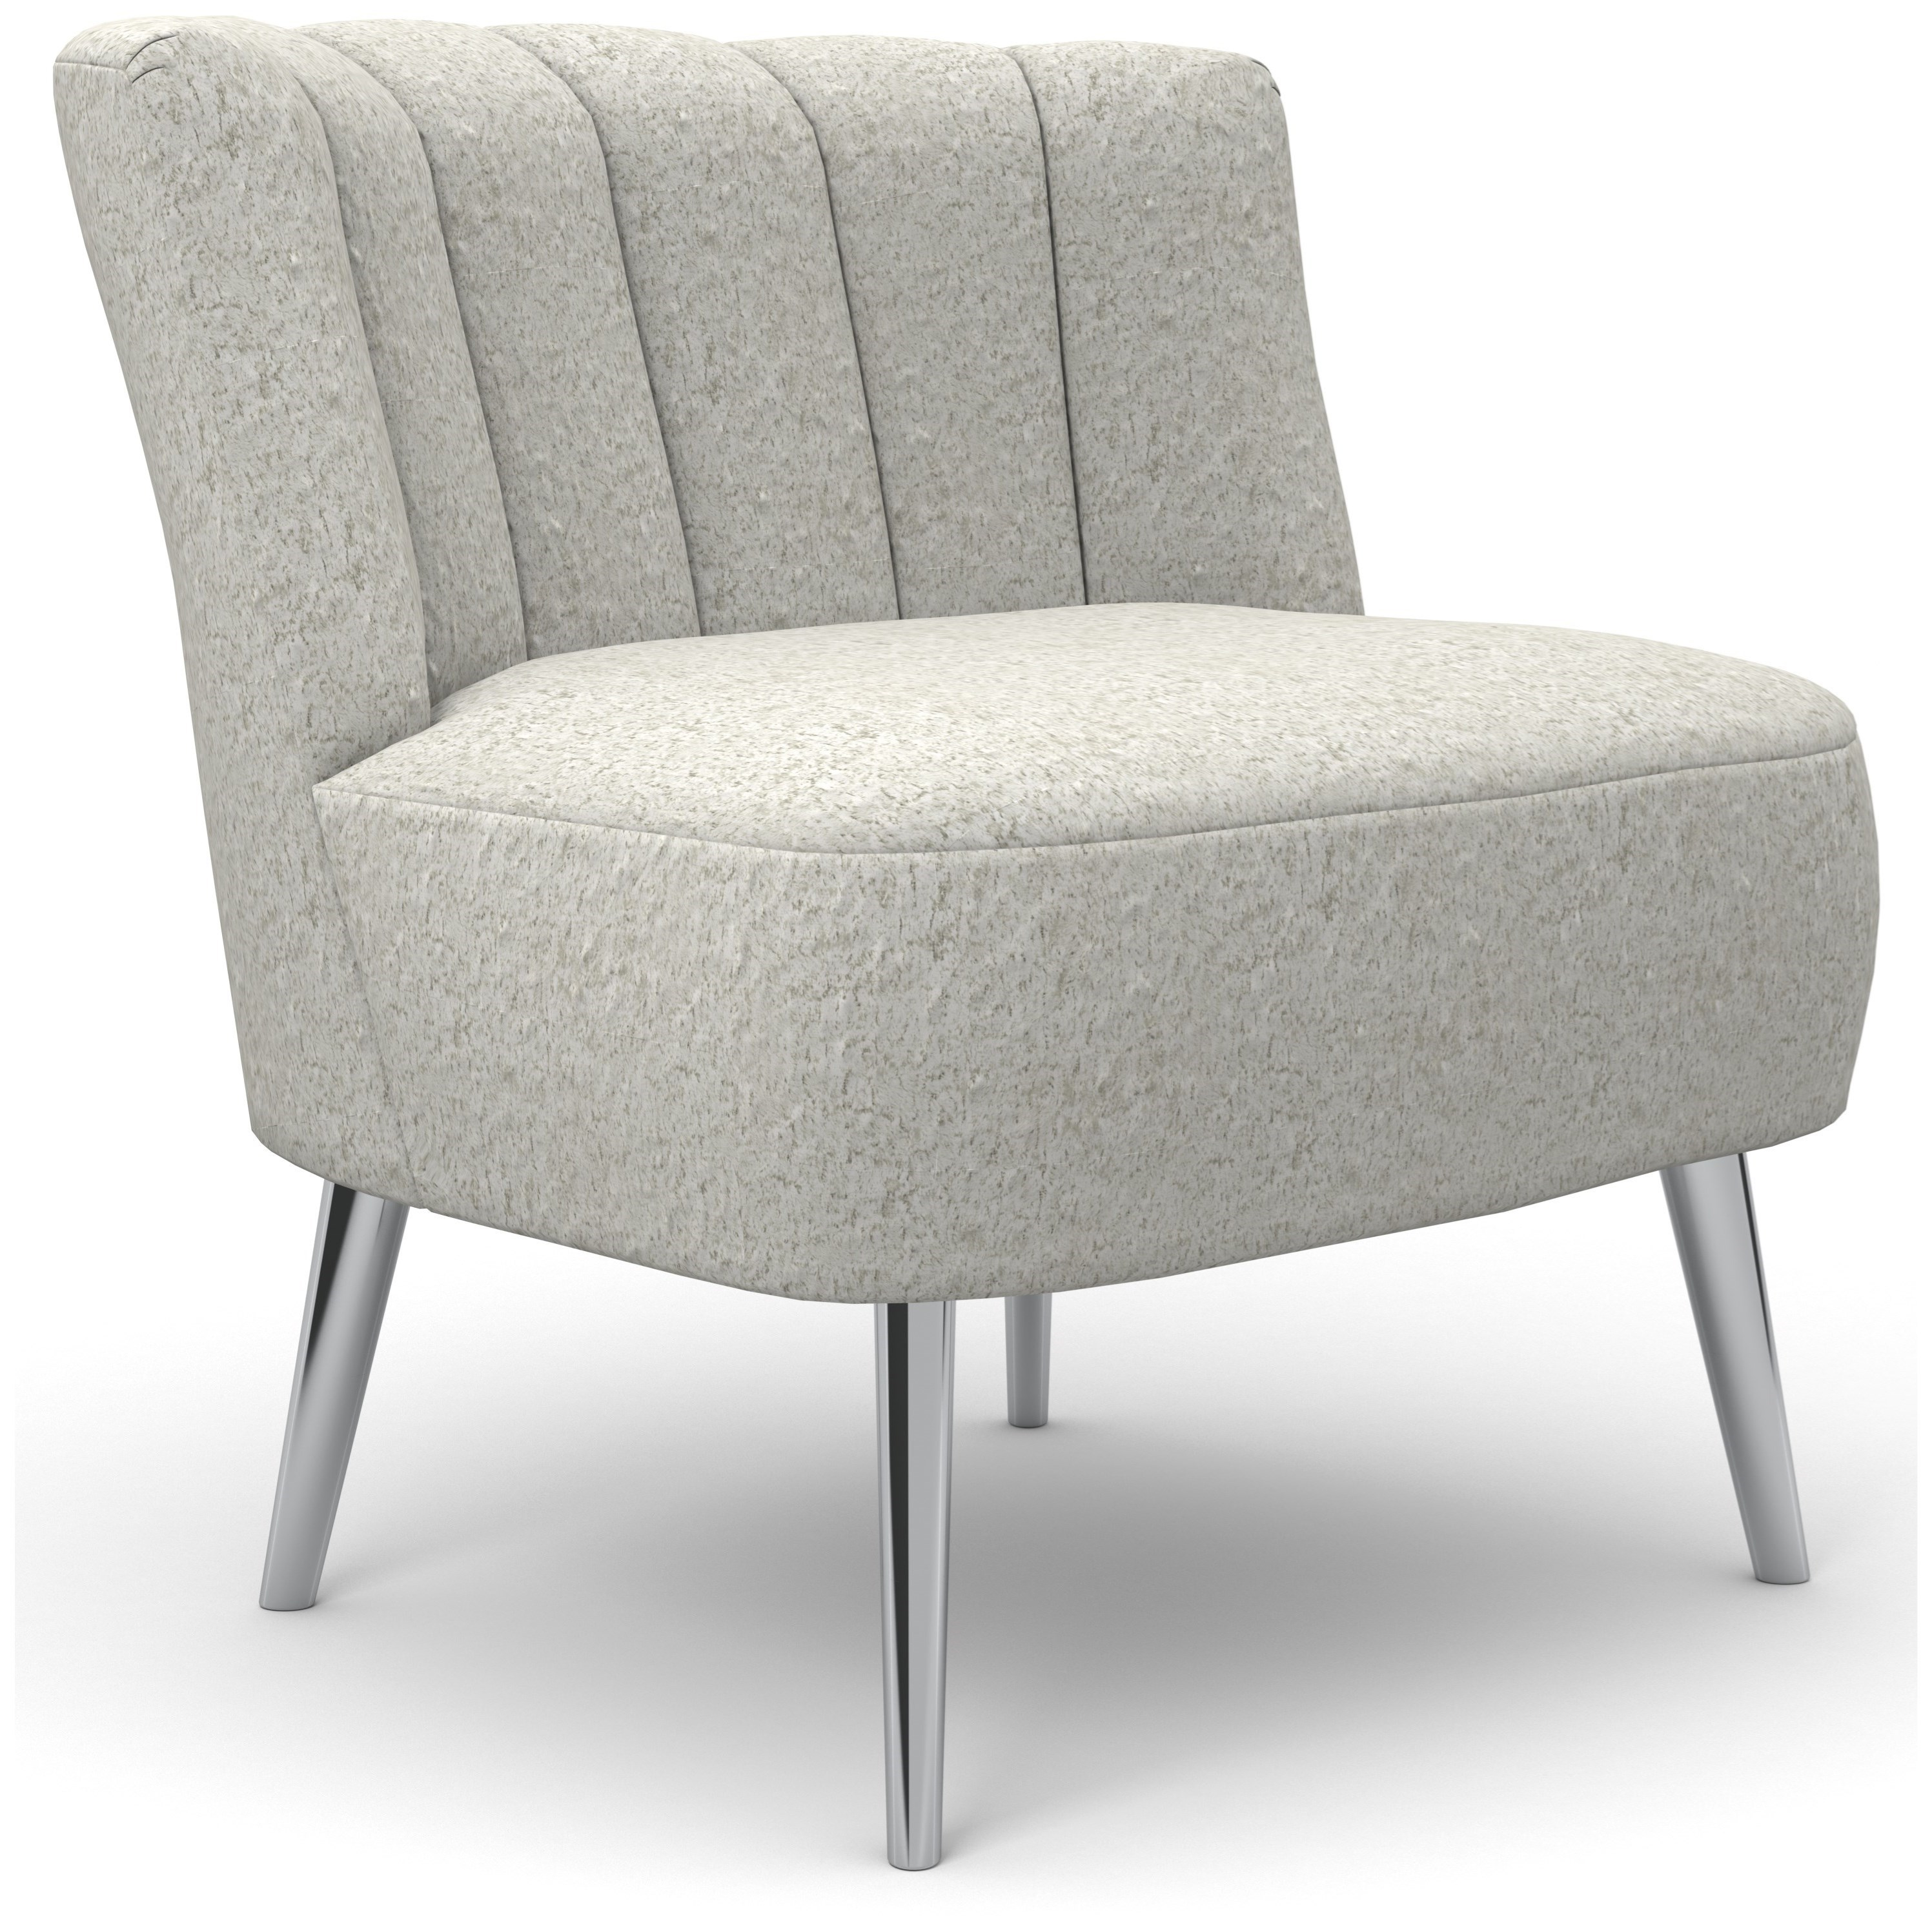 Best Xpress - Ameretta Accent Chair by Best Home Furnishings at Mueller Furniture